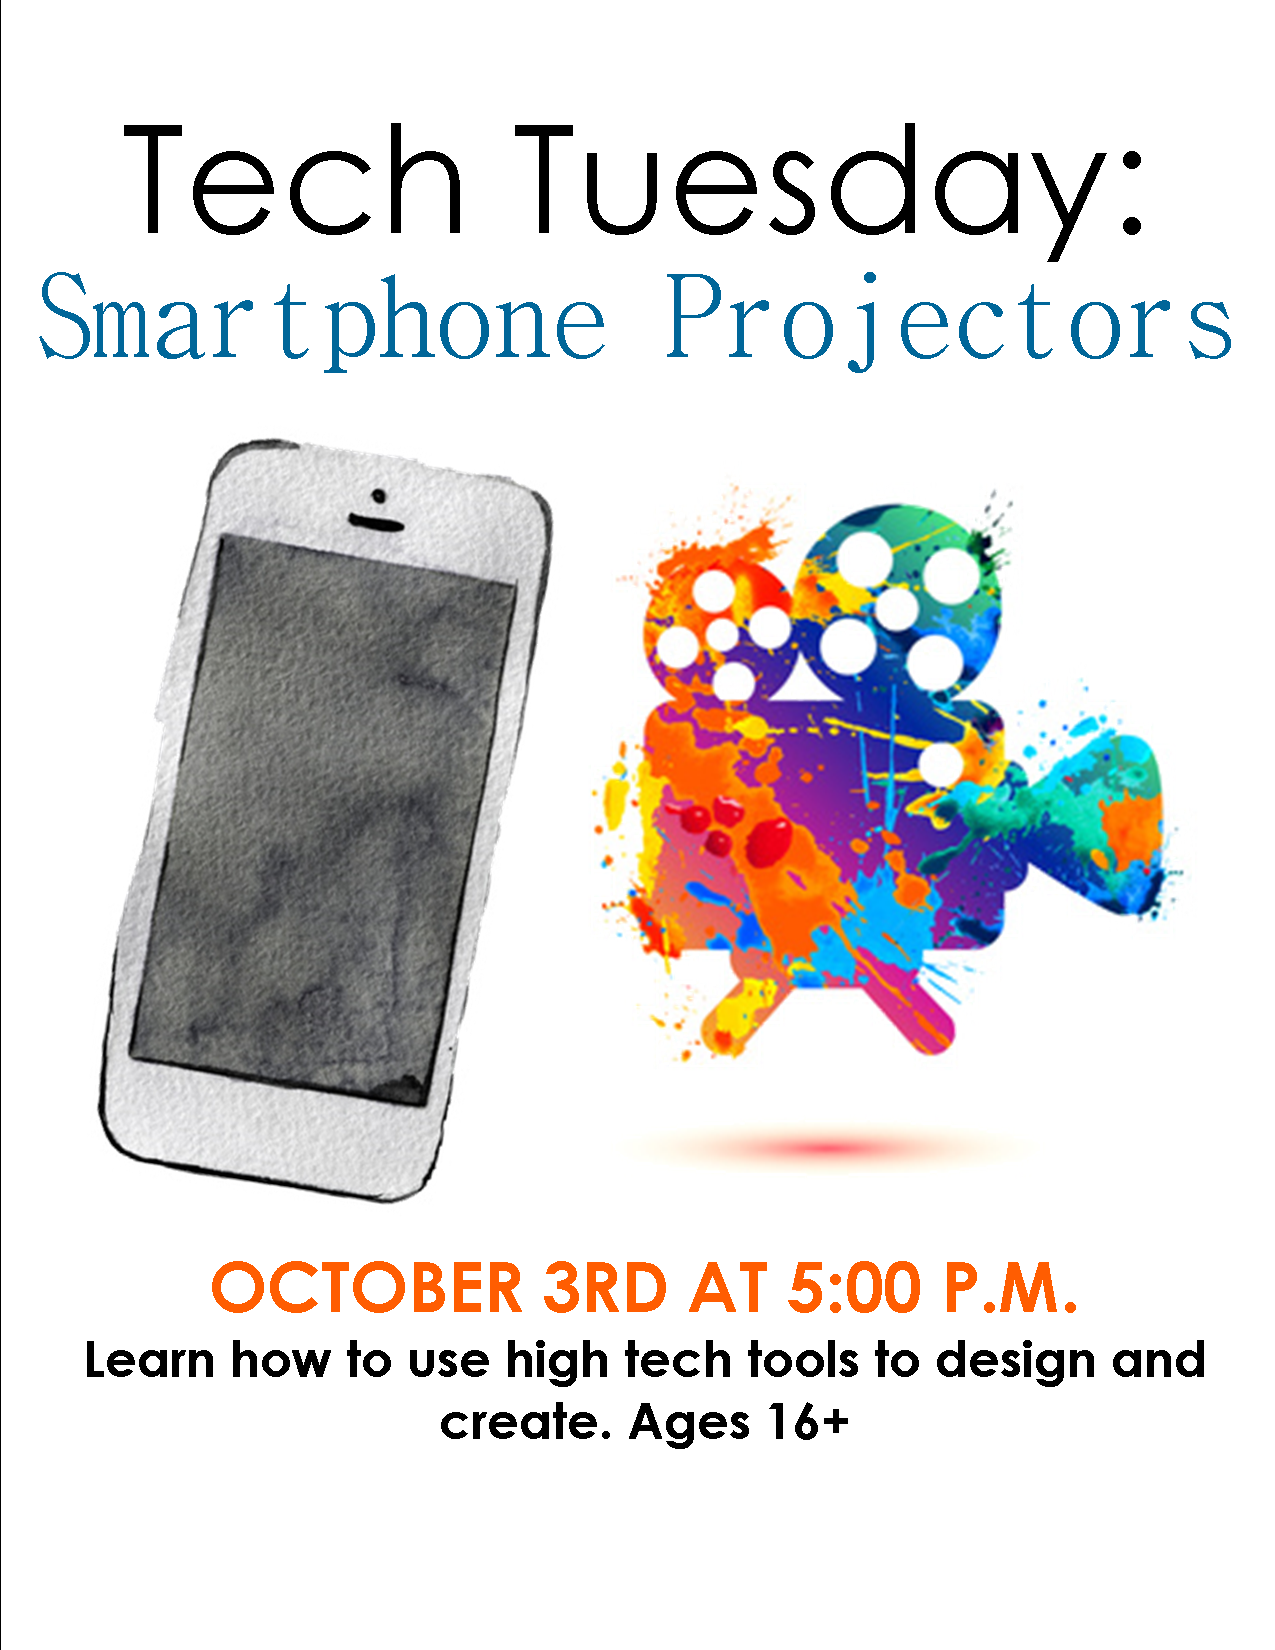 Tech Tuesday: Smartphone Projector